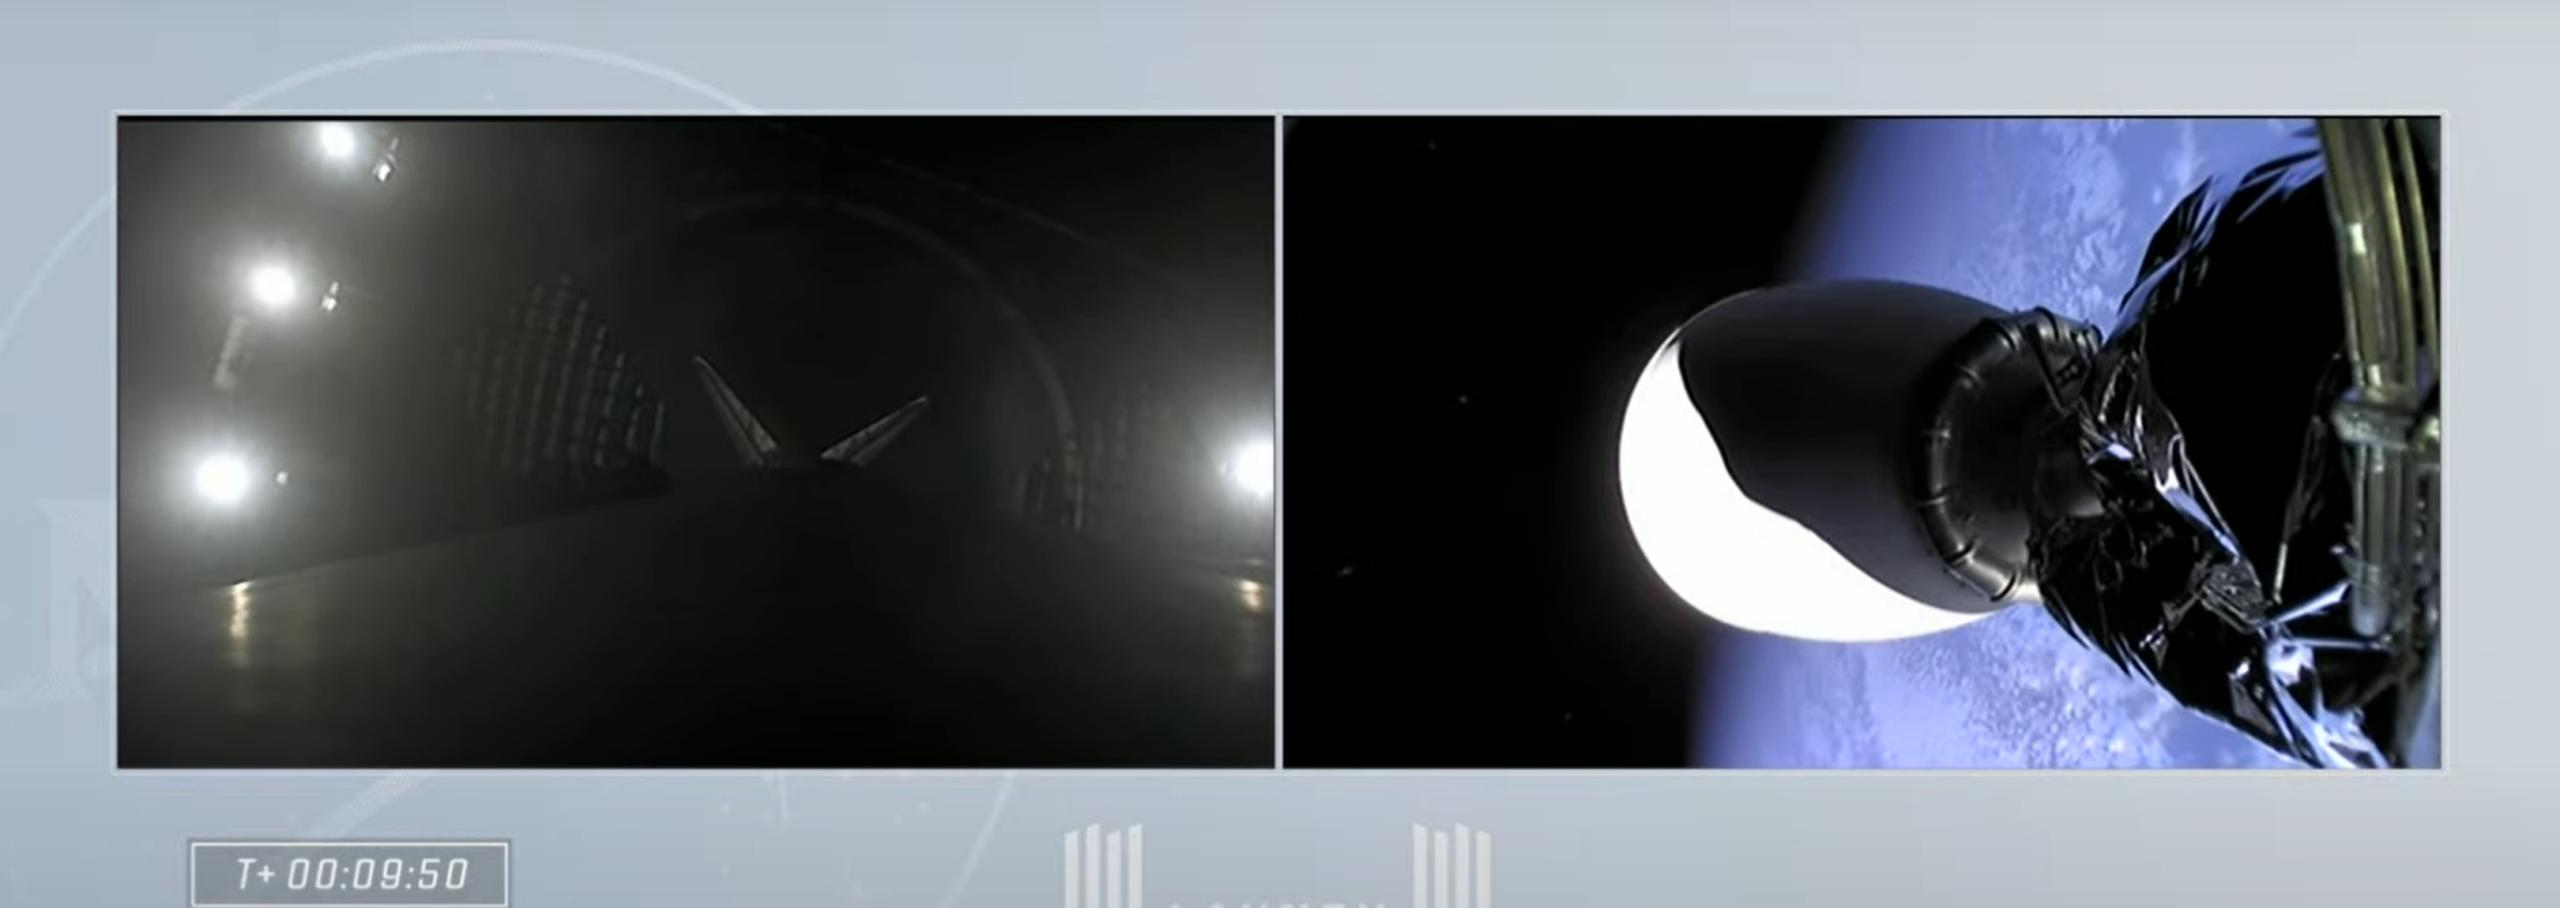 Crew-2 Crew Dragon C206 Falcon 9 B1061 042321 webcast (SpaceX) landing 2 (c)